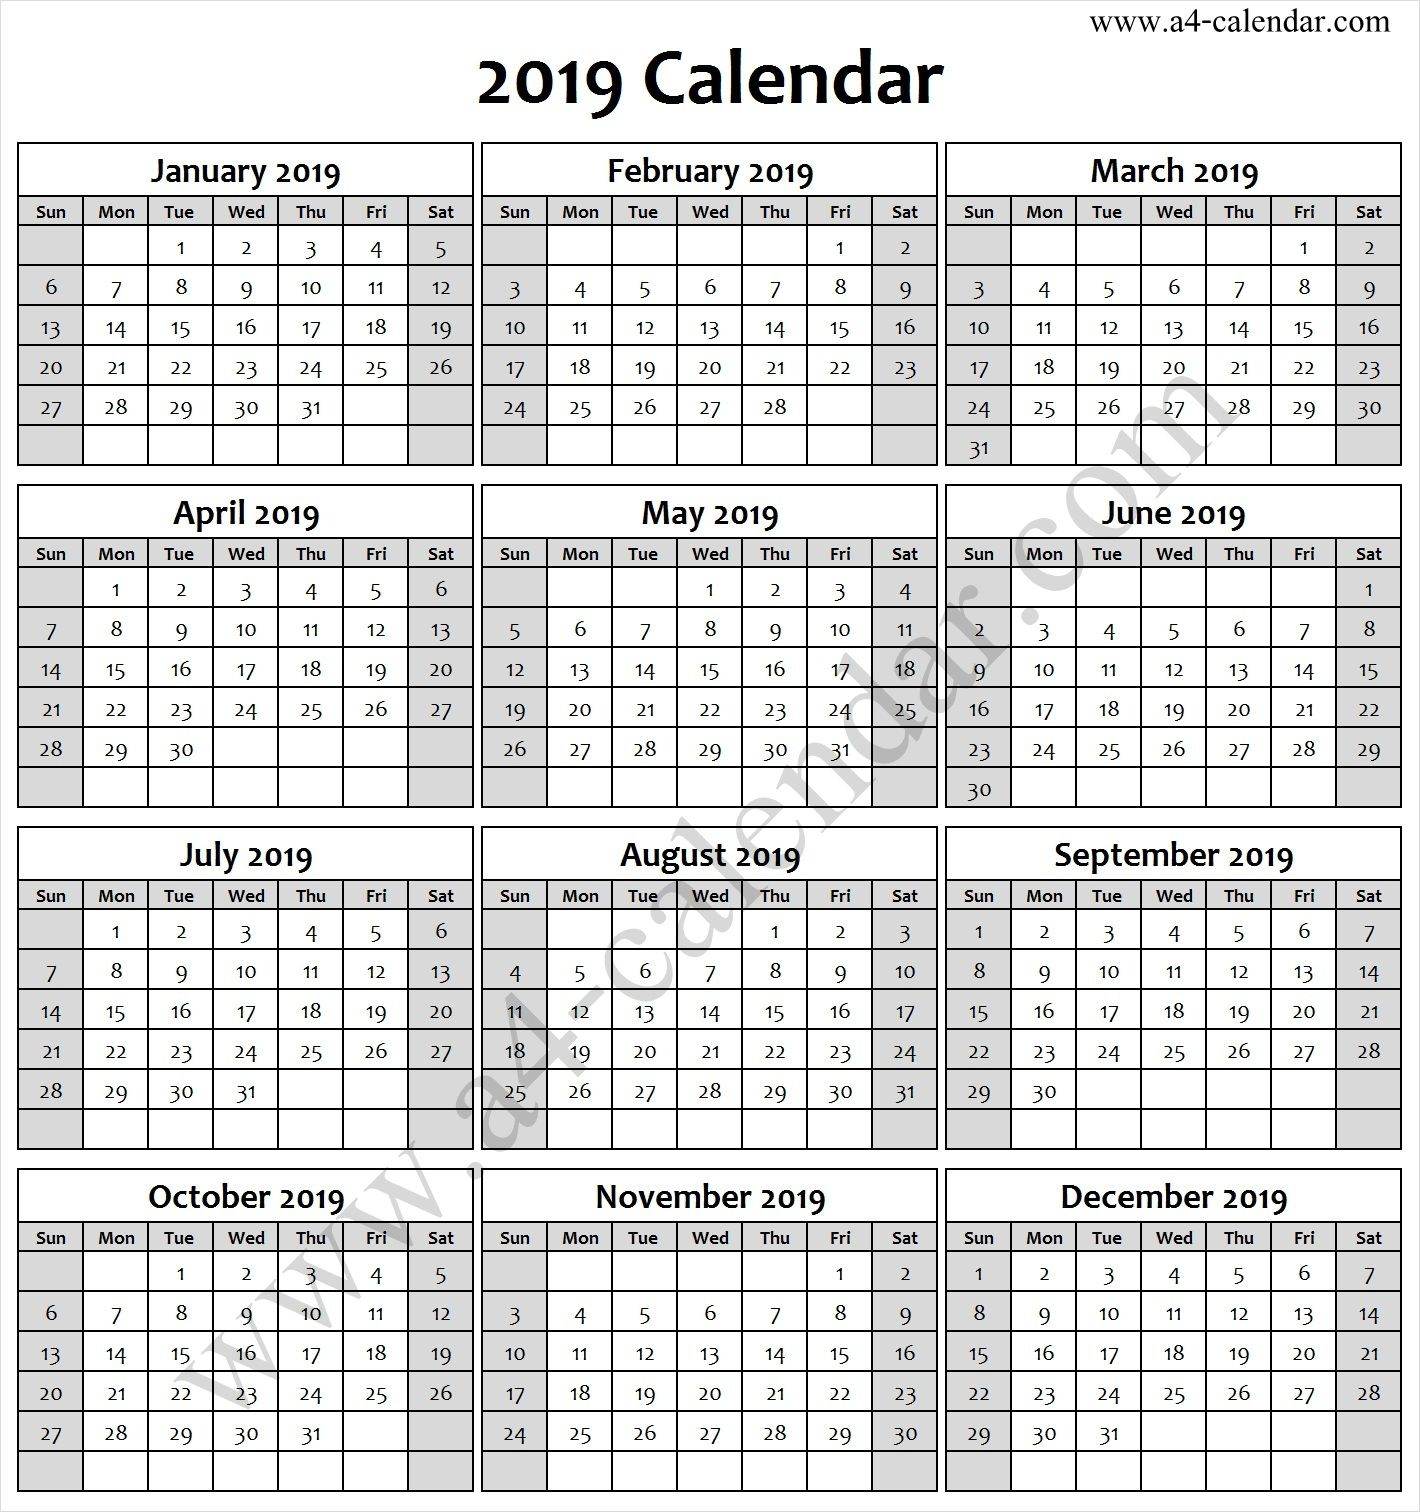 2019 Calendar Black And White | 2019 Calendar, Free